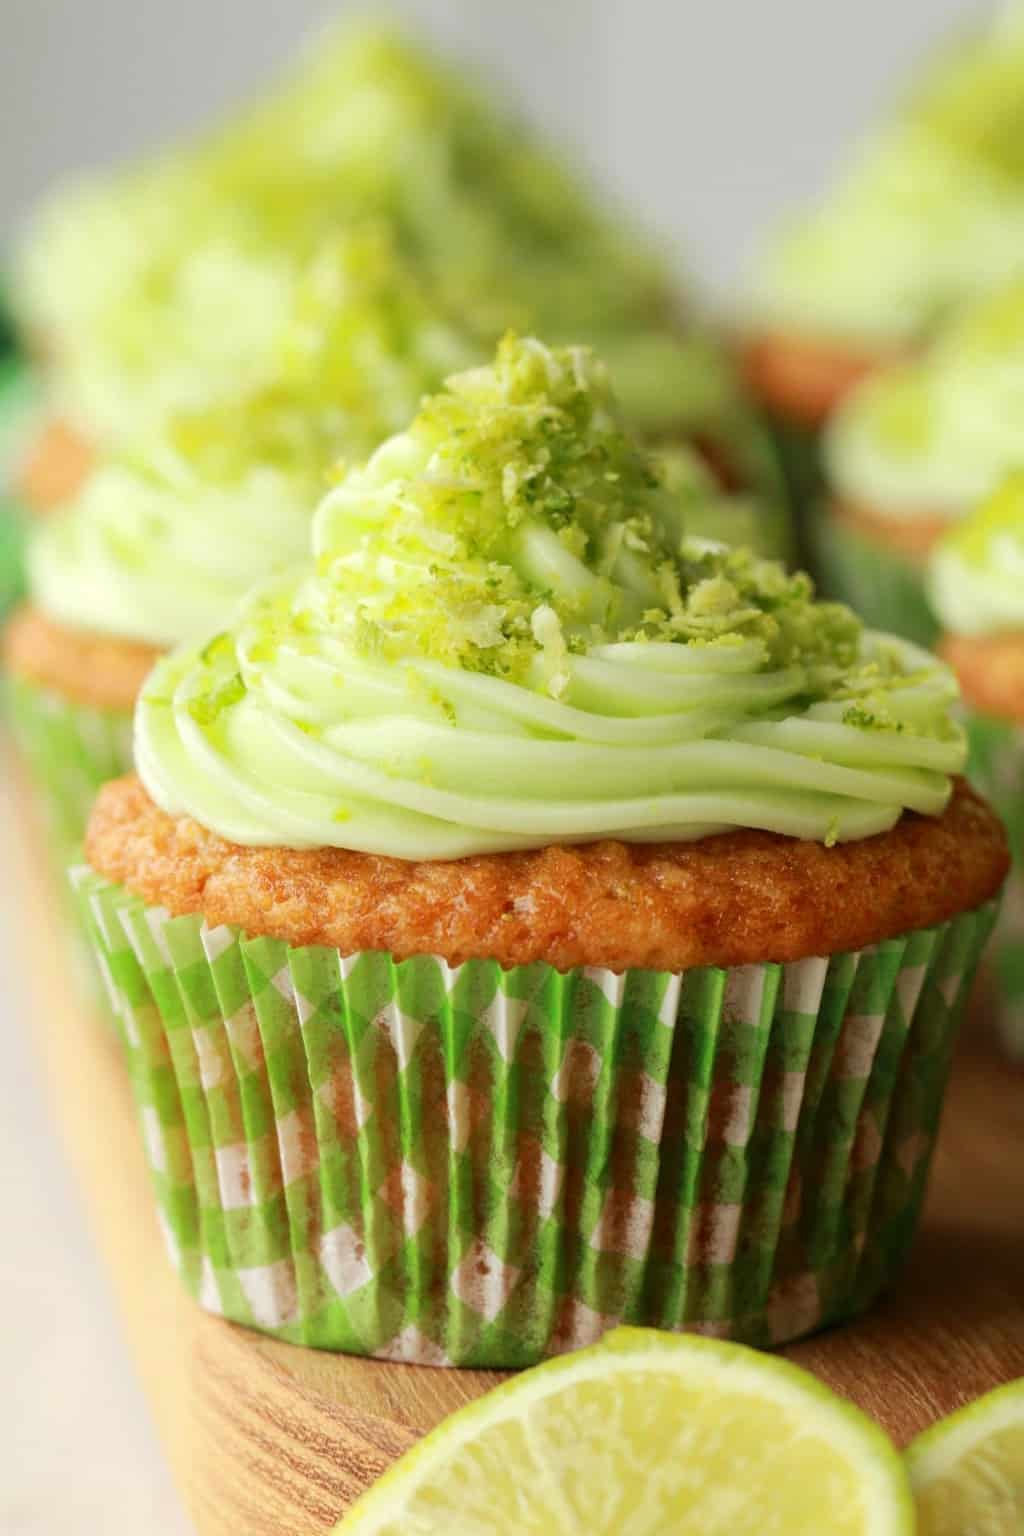 Vegan Key Lime Cupcakes close up with lime slices in the foreground